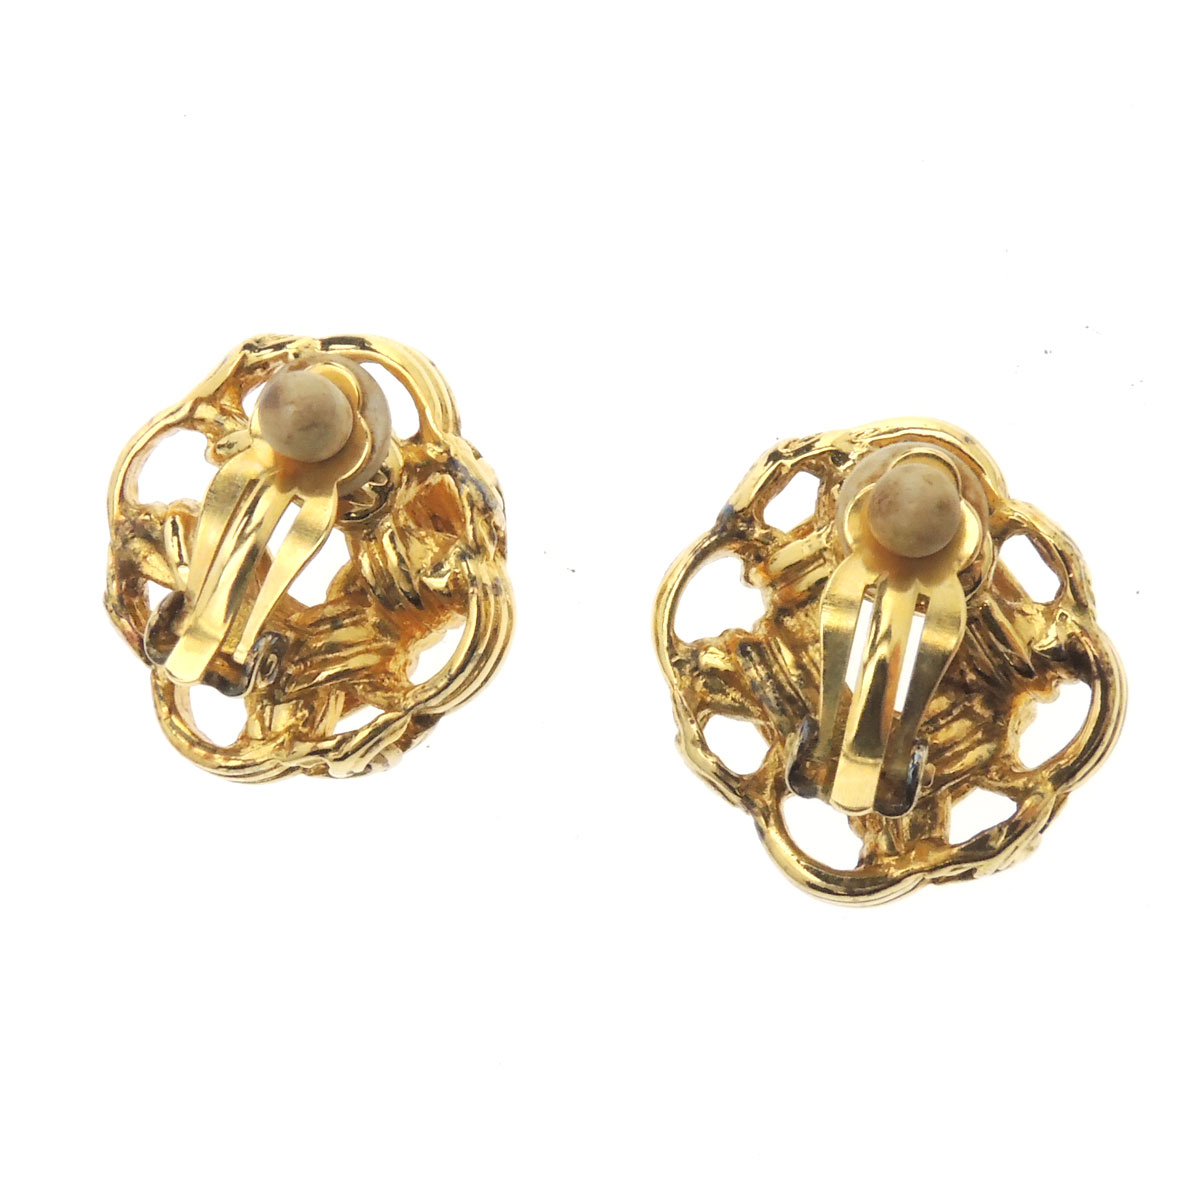 CHANEL earrings women's earrings